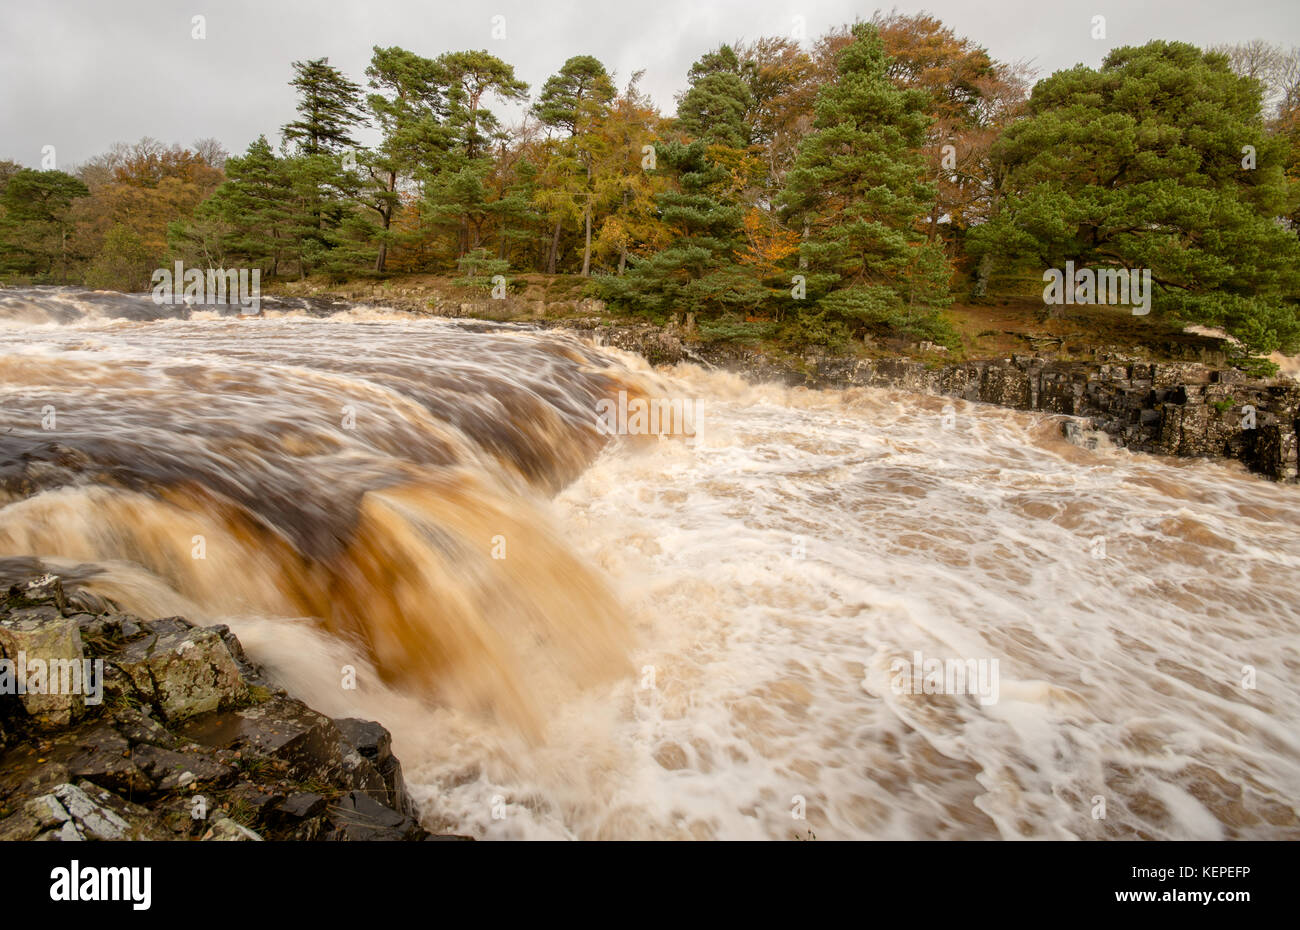 Low force Waterfall, Upper Teesdale, County Durham, UK. - Stock Image